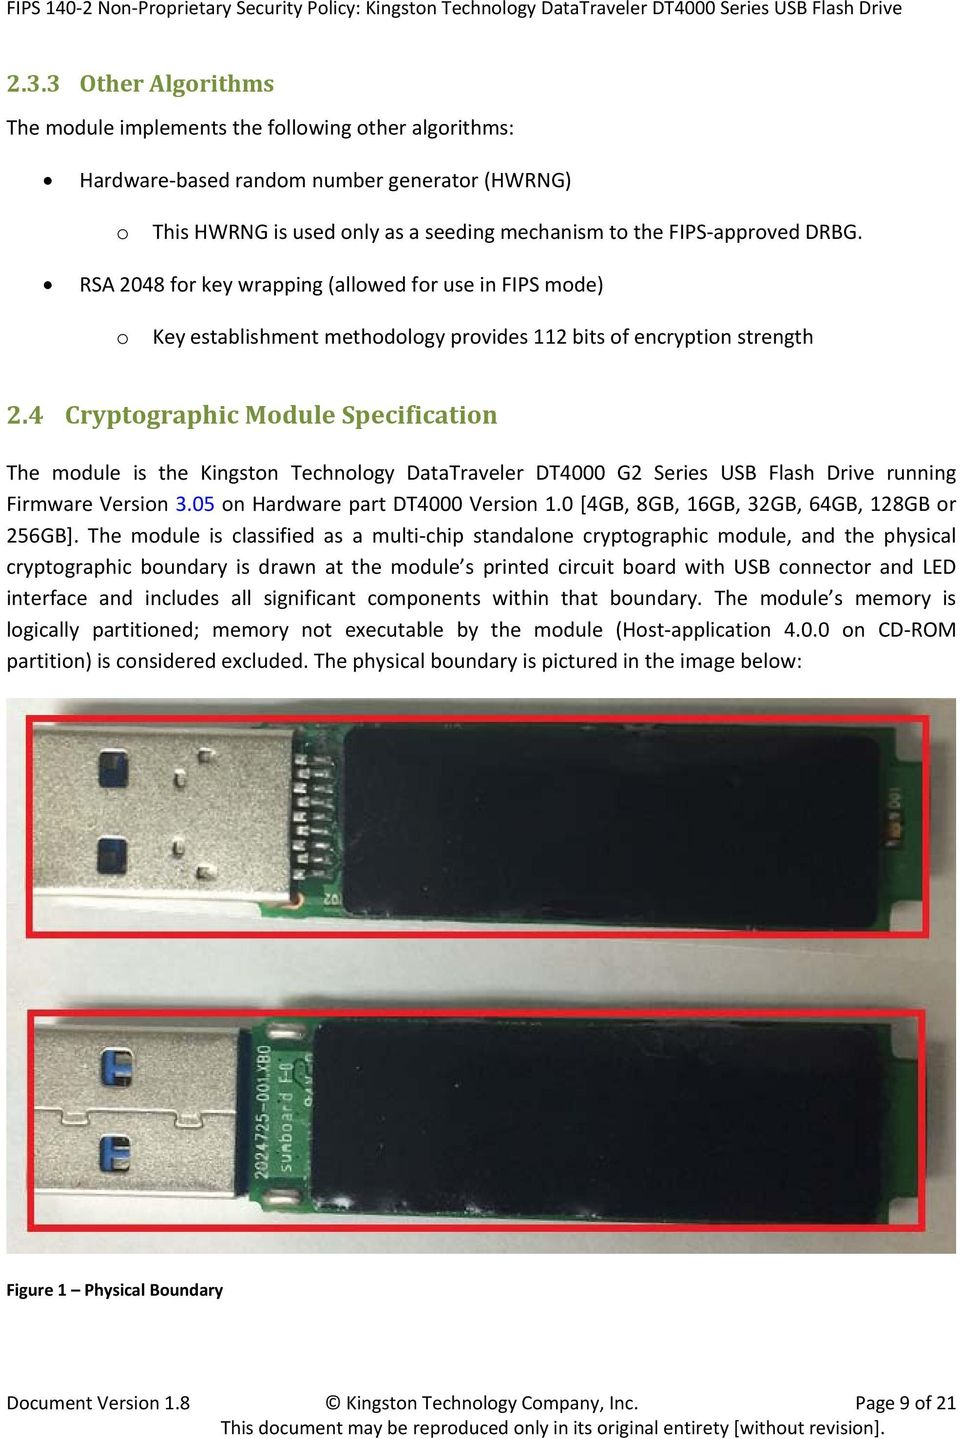 4 Cryptographic Module Specification The module is the Kingston Technology DataTraveler DT4000 G2 Series USB Flash Drive running Firmware Version 3.05 on Hardware part DT4000 Version 1.